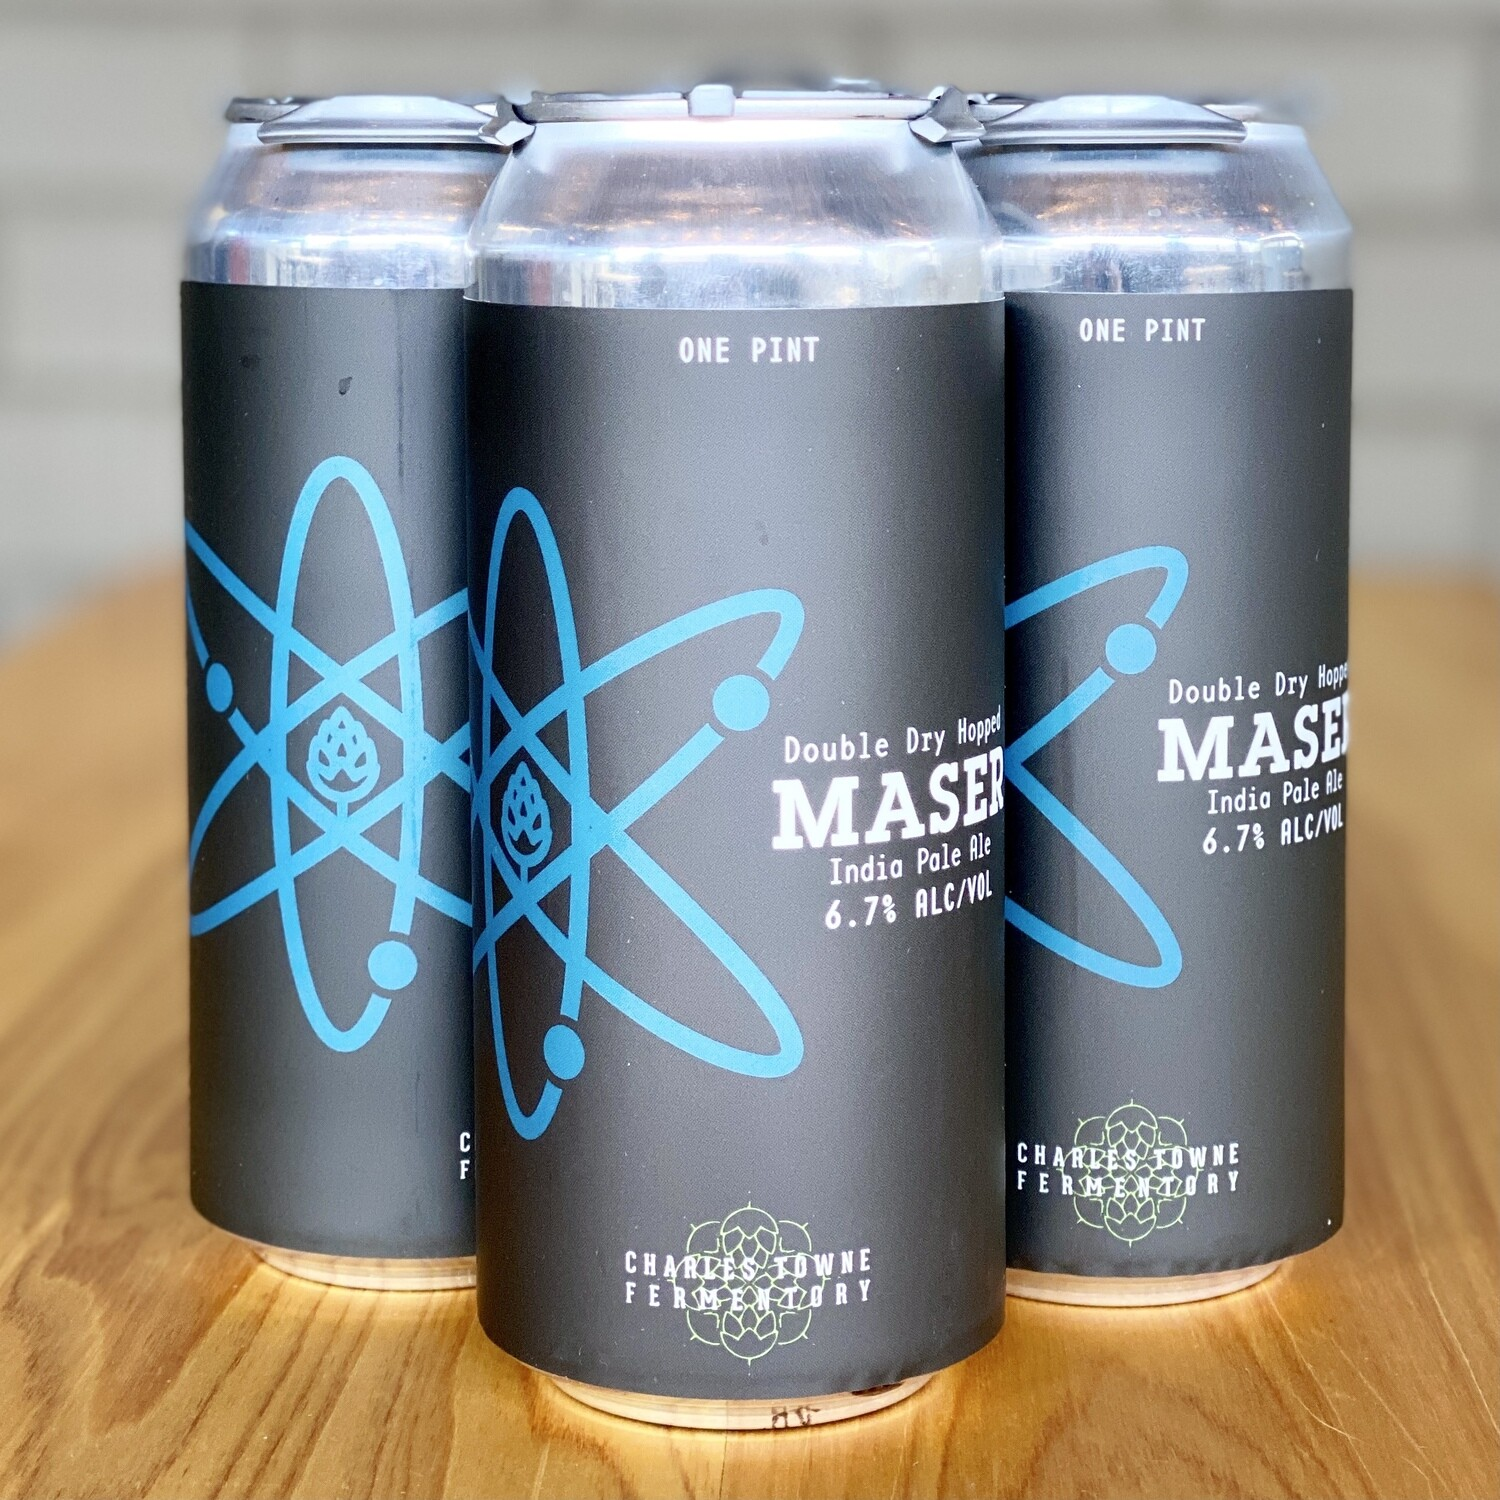 Charles Towne Fermentory DDH Maser IPA (4pk)